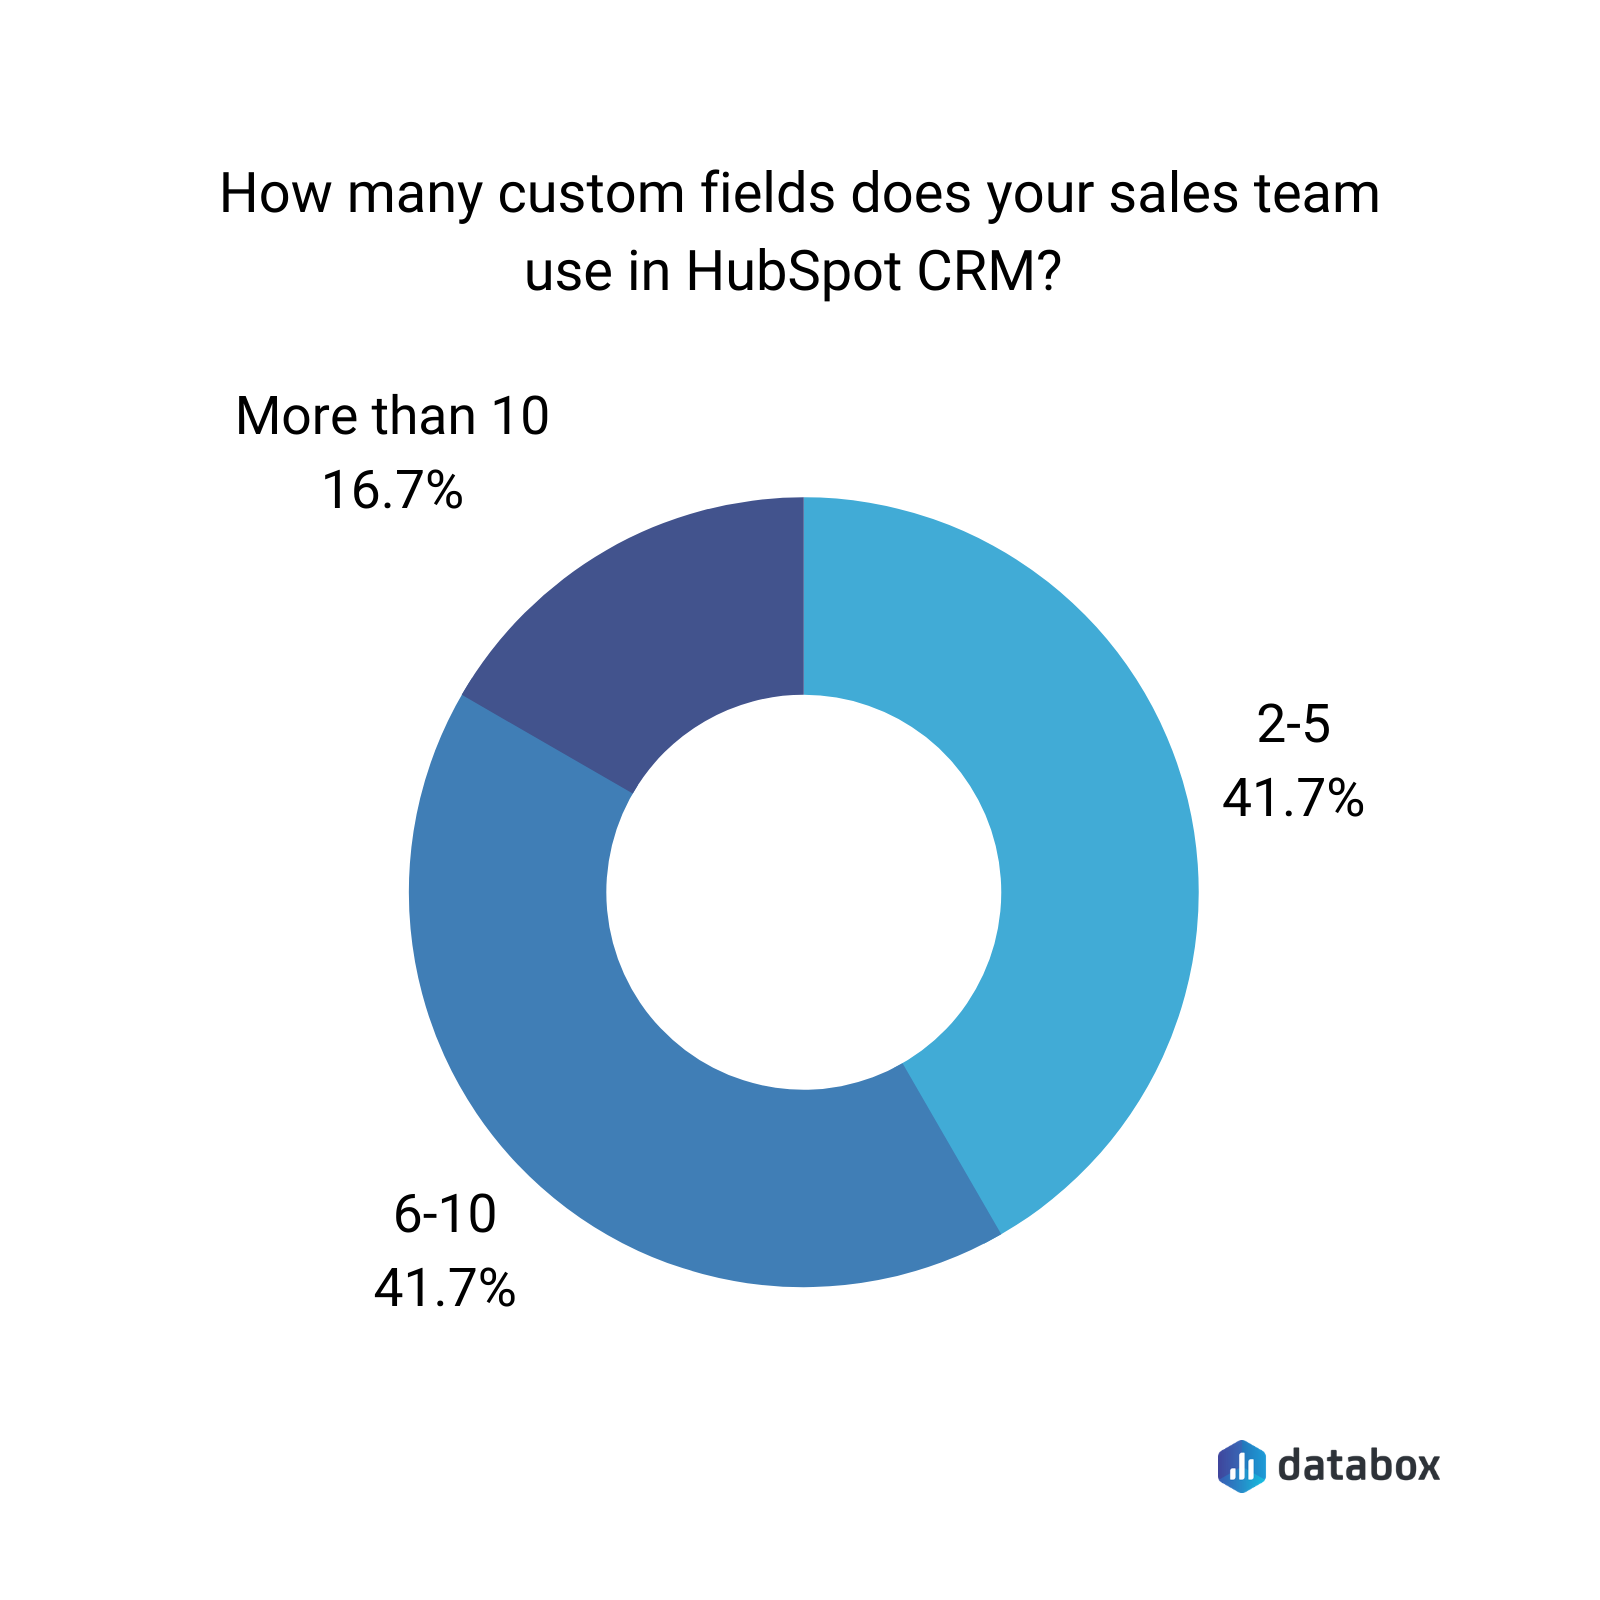 Databox survey results showing the number of average custom fields in HubSpot CRM